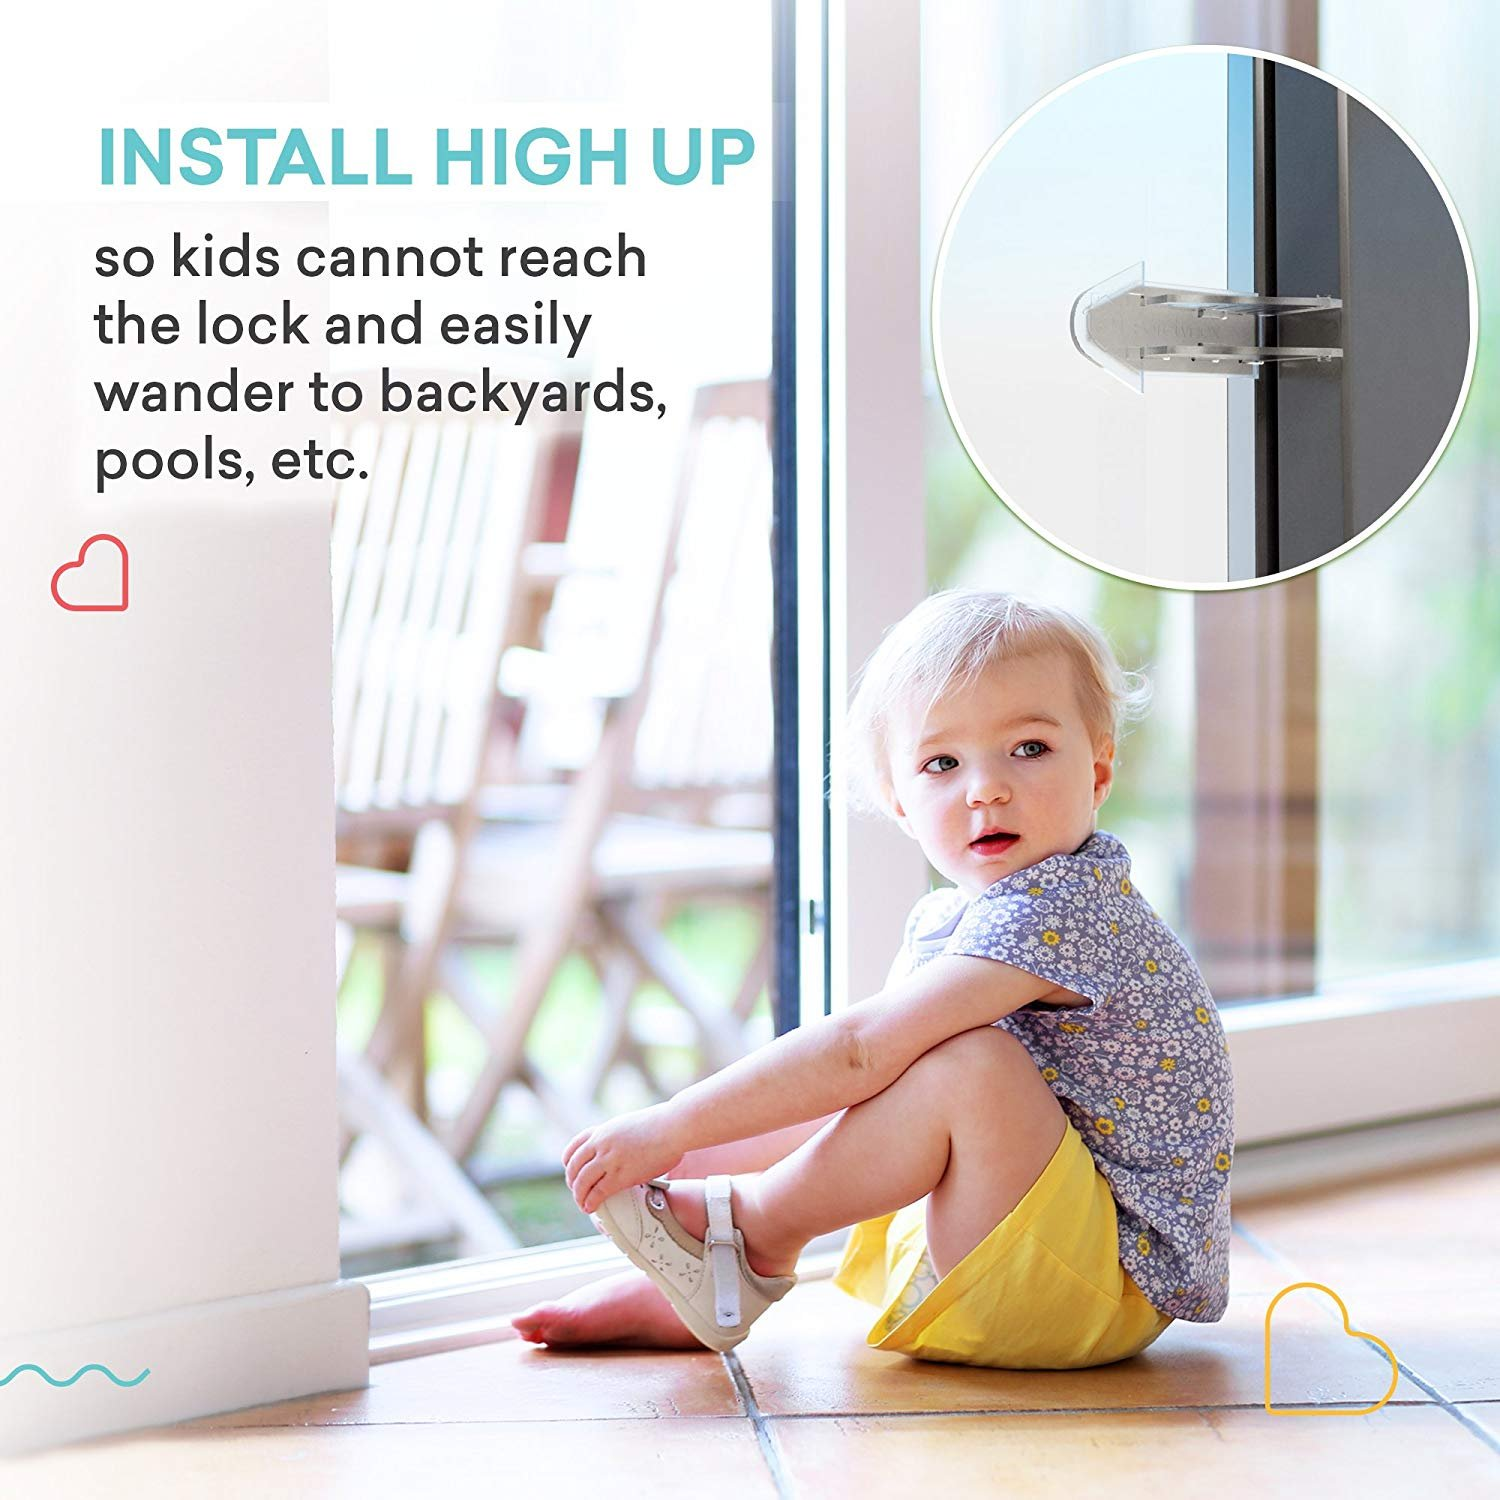 Cupid Pack of 4 Sliding Window Locks Stop and 4 Sliding Door Lock – Sliding Security Door Stop & Child Window Locks to Child Proof Your Home - Aluminum Alloy Door & Windows Safety Lock – 8pcs by CUPID (Image #7)